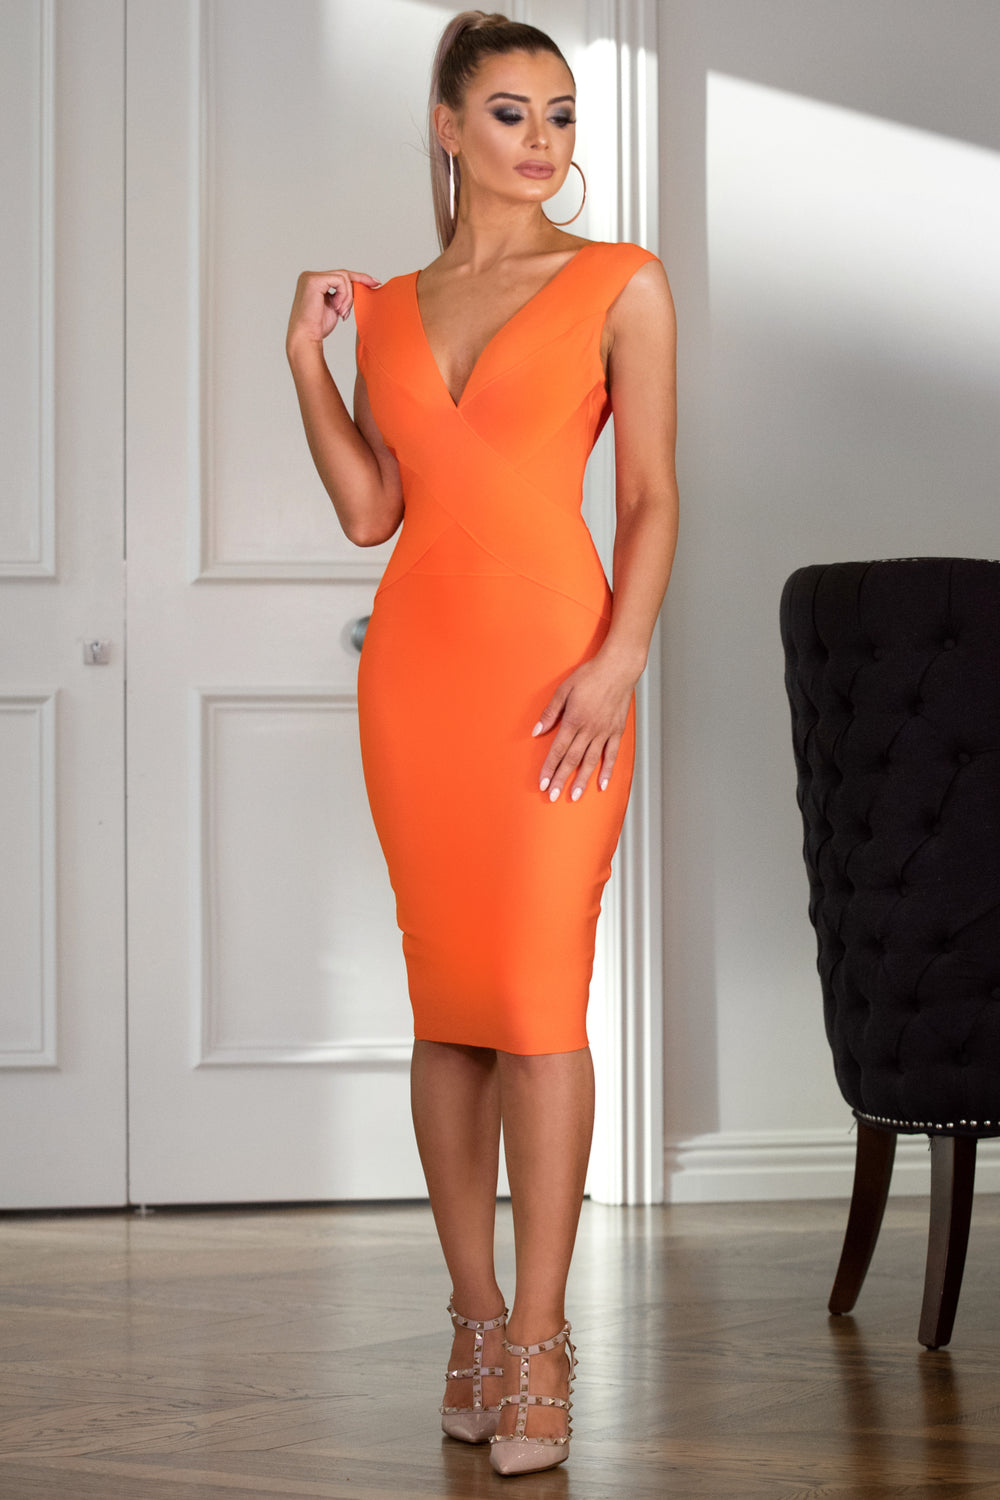 MANDY – Orange Dress | Jindigo Babe Melbourne